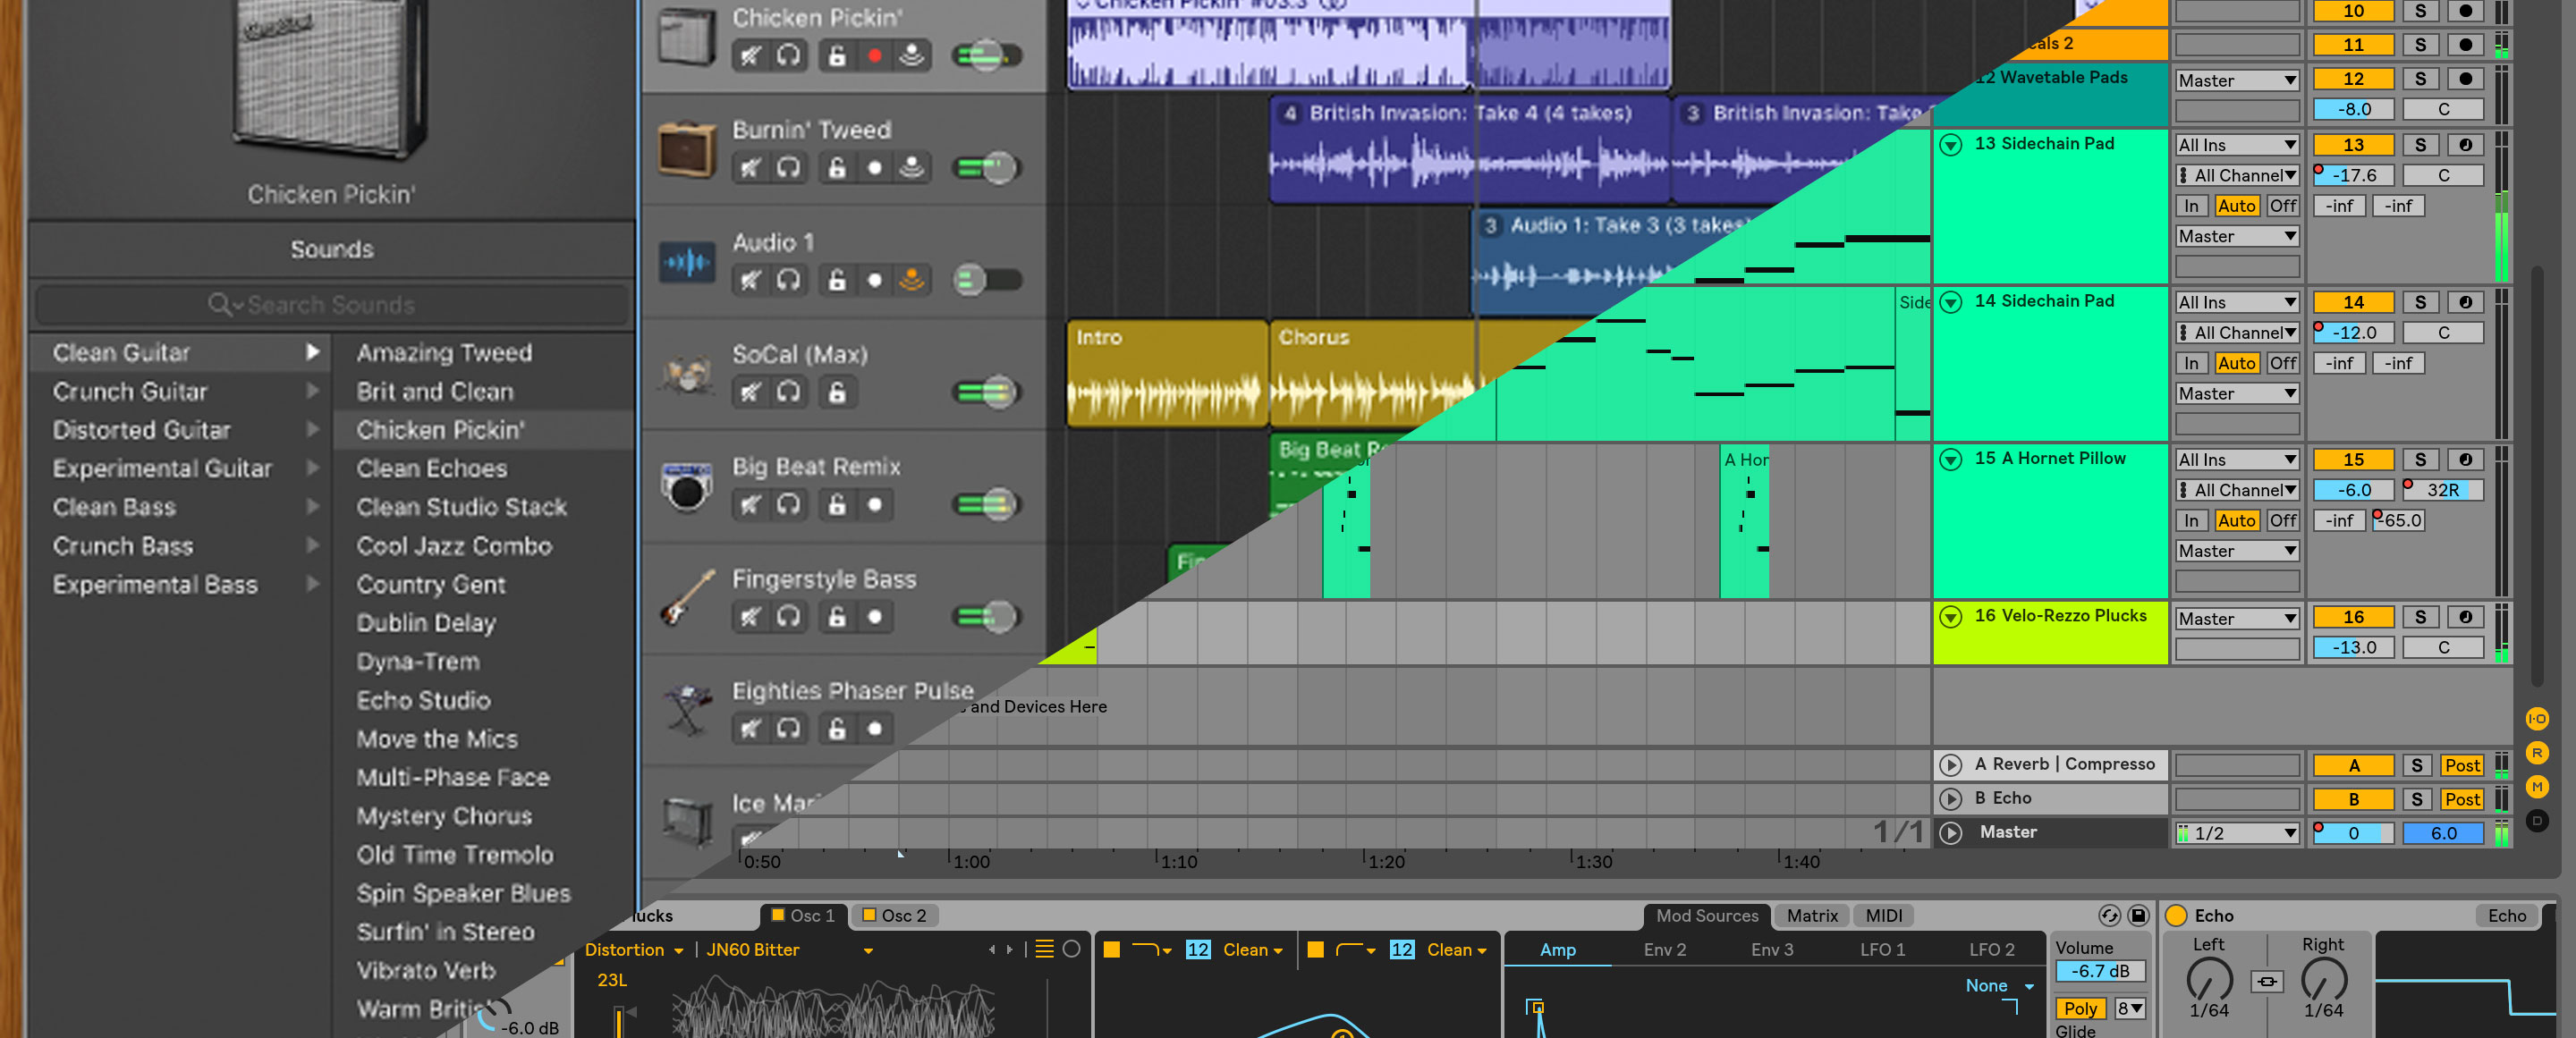 How To Remix A Song: Easy Guide For Competitions, Bootlegs & More